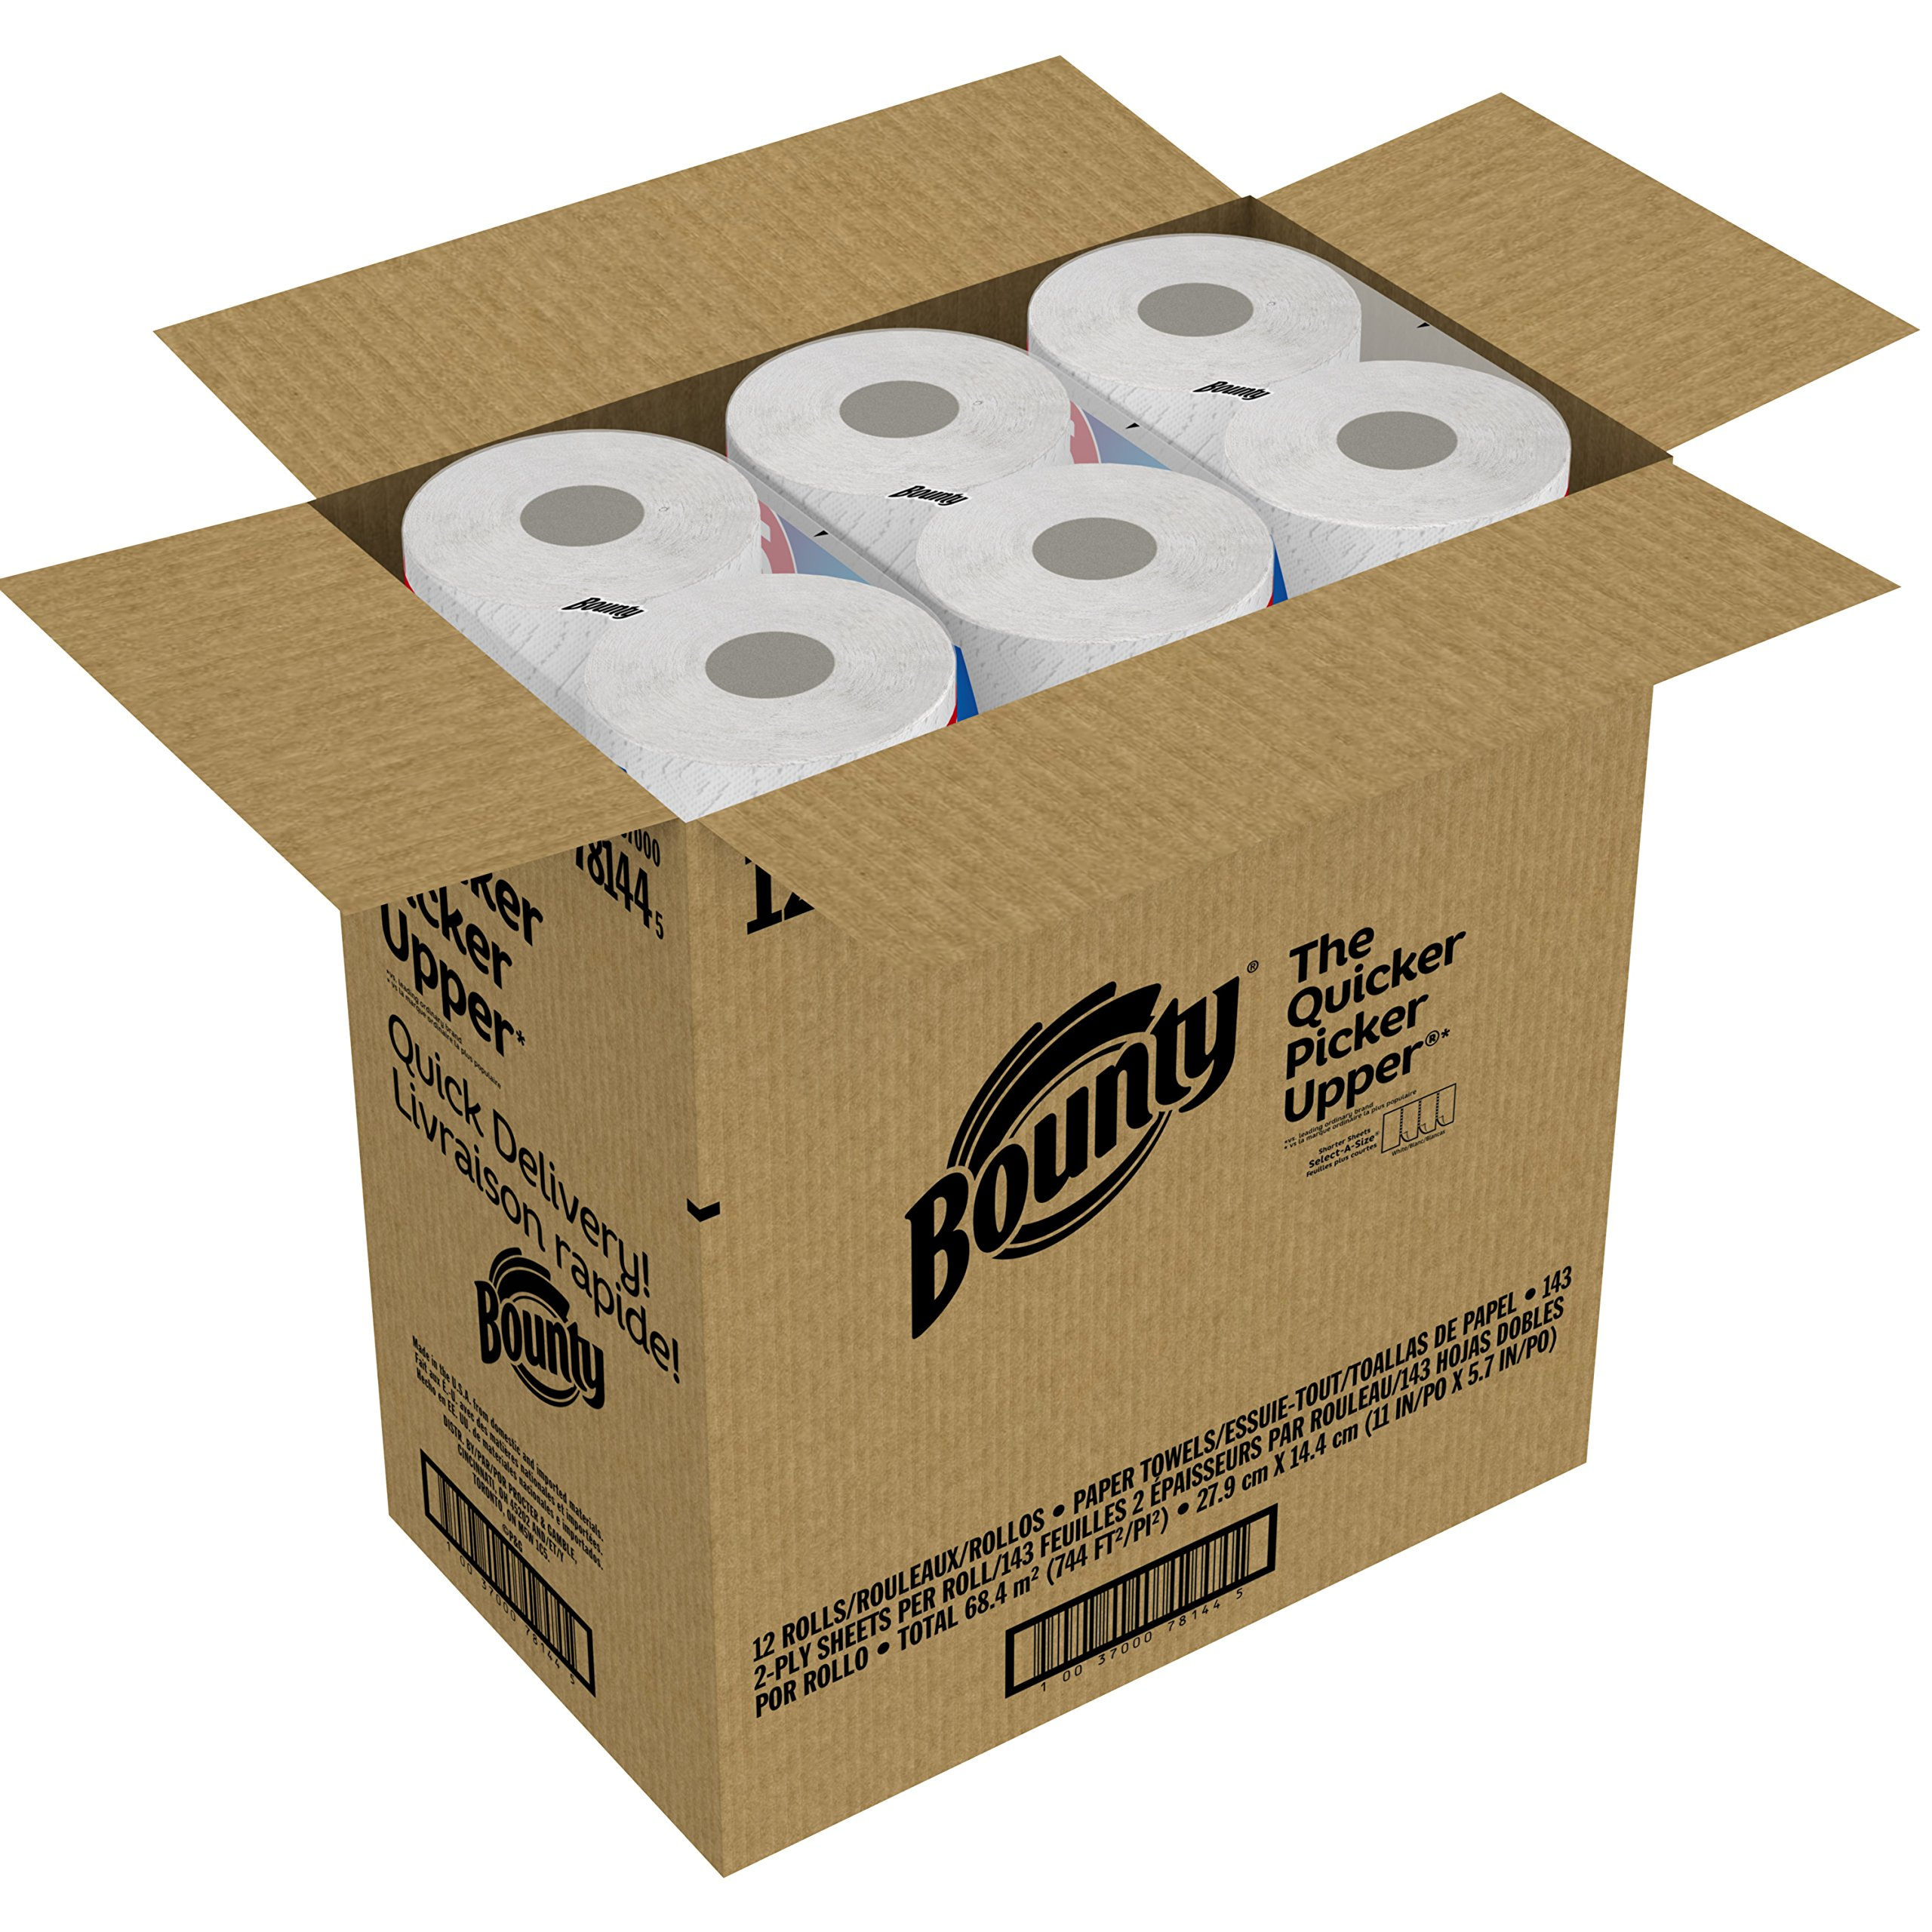 Bounty Quick-Size Paper Towels, White, Family Rolls, 12 Count (Equal to 30 Regular Rolls) by Bounty (Image #8)